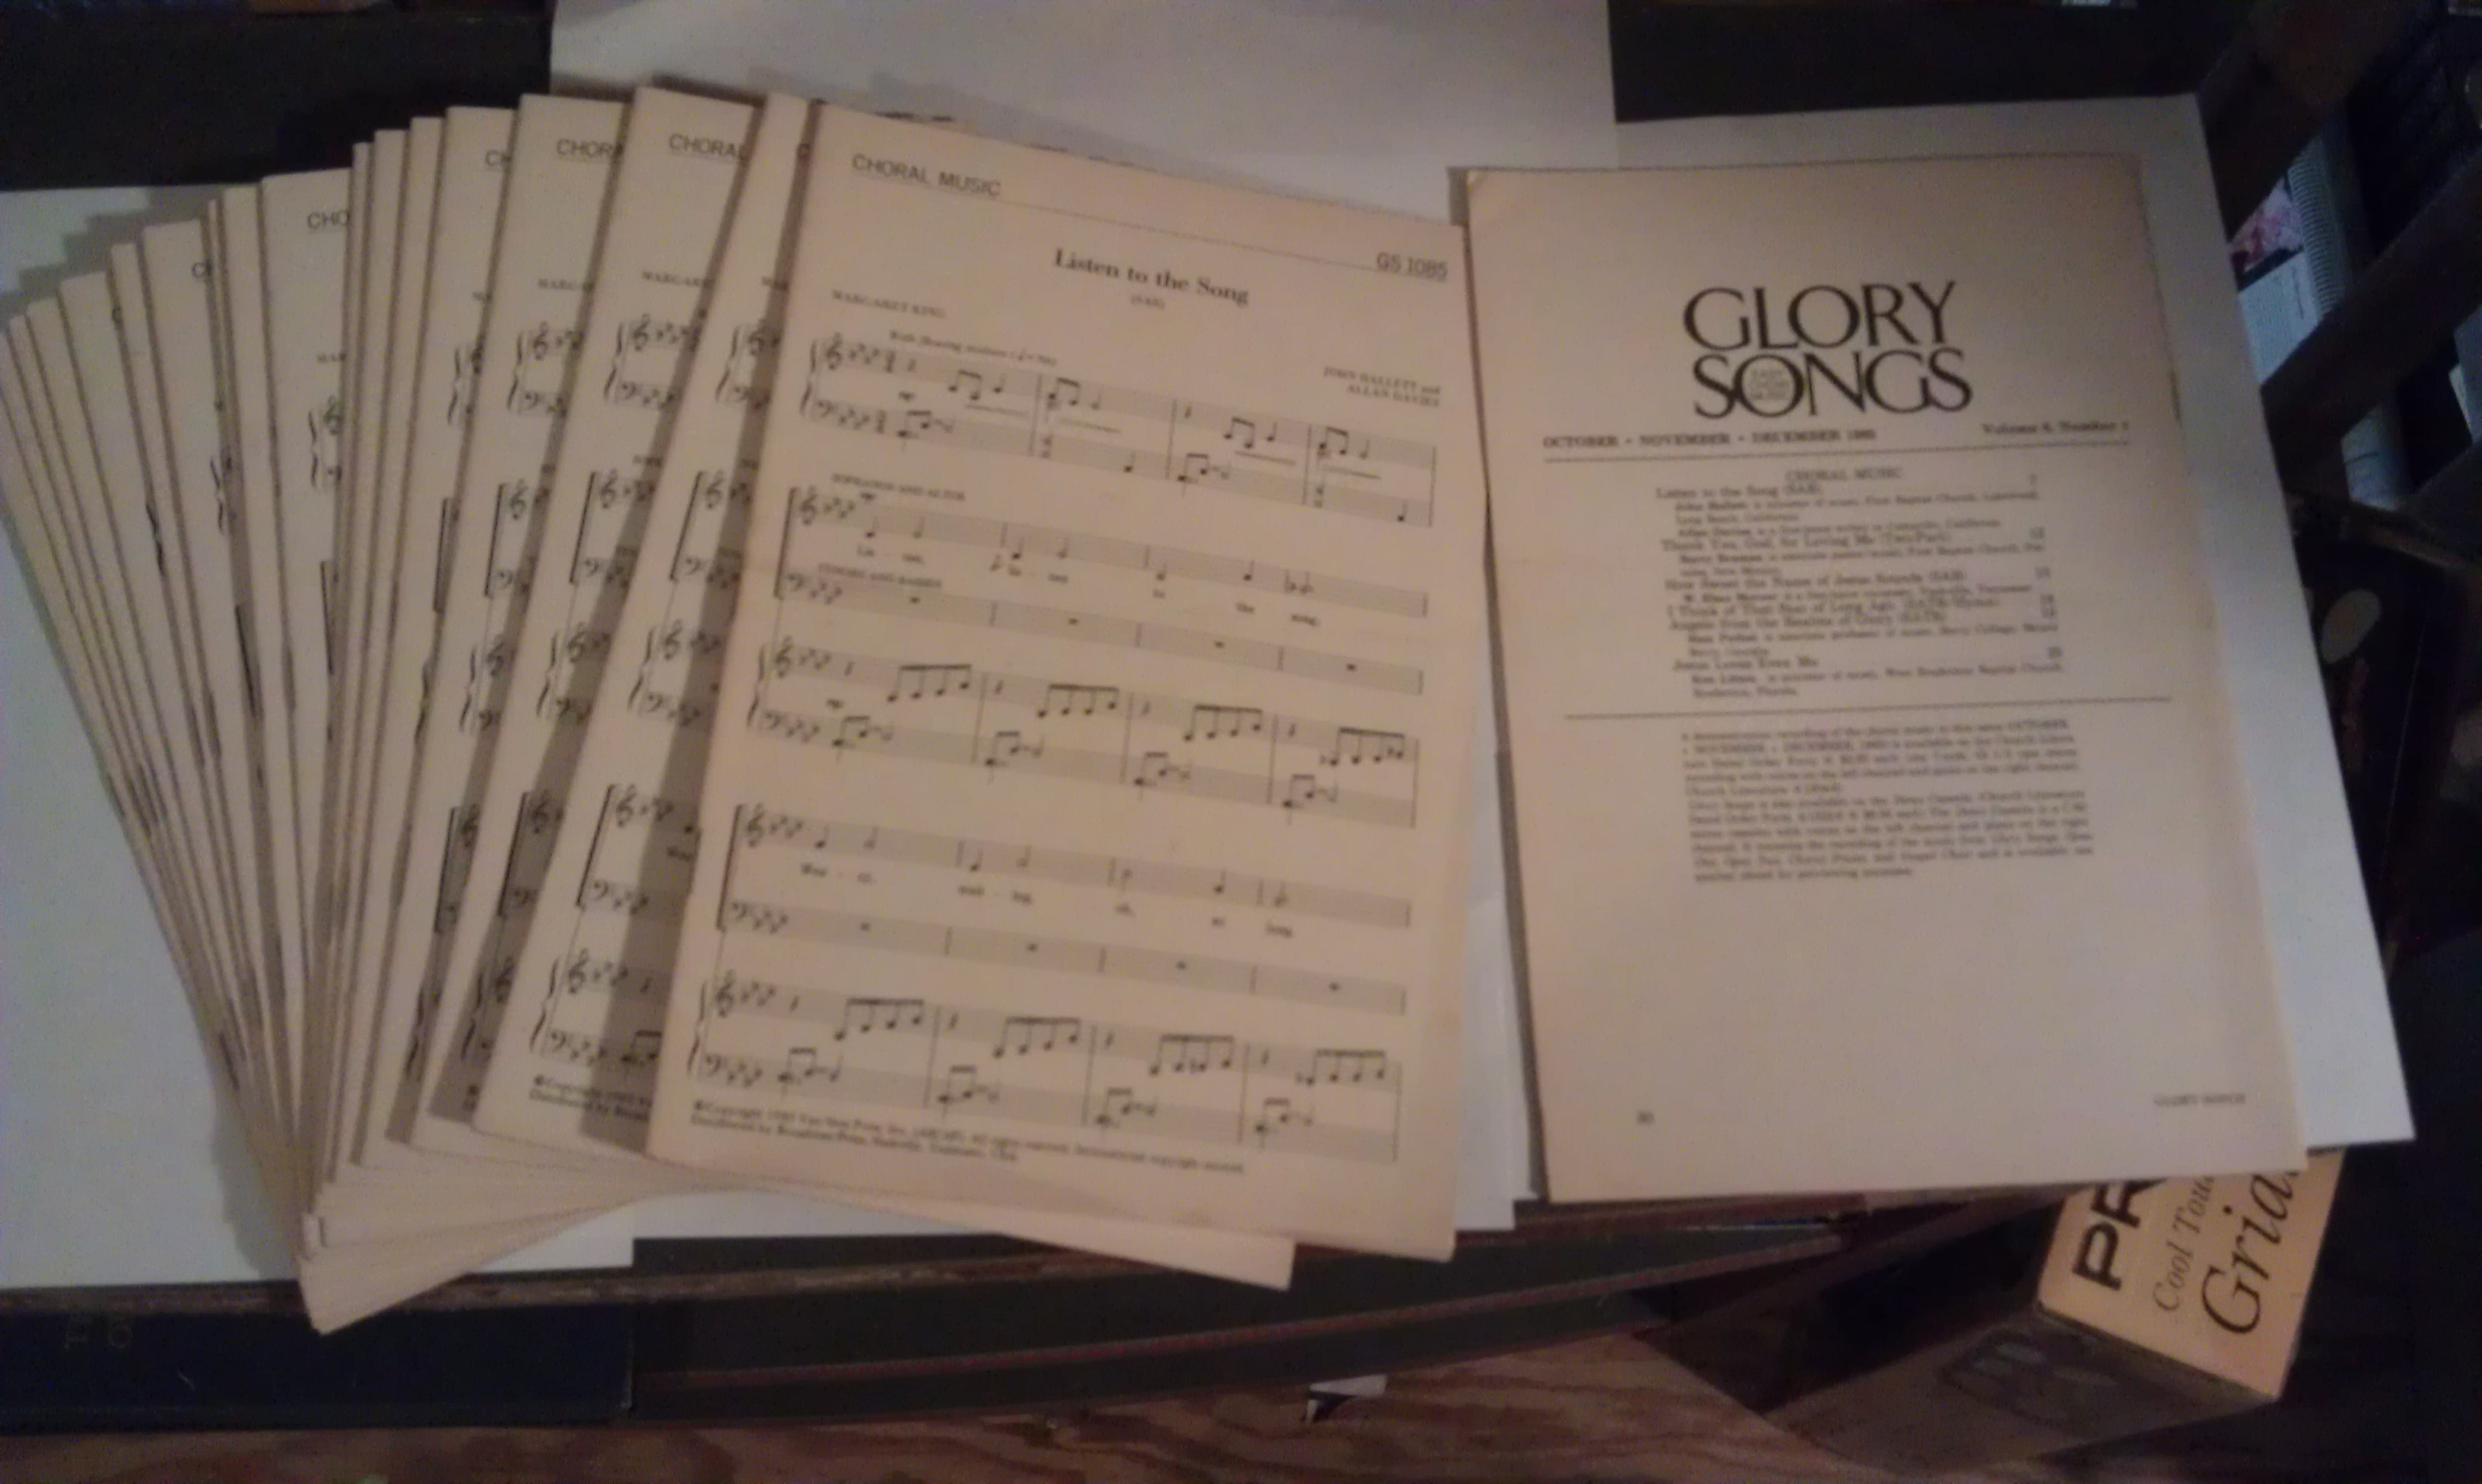 Image for Glory Songs: Easy Choir Music (19 copies) Vol. 6, Number 1)